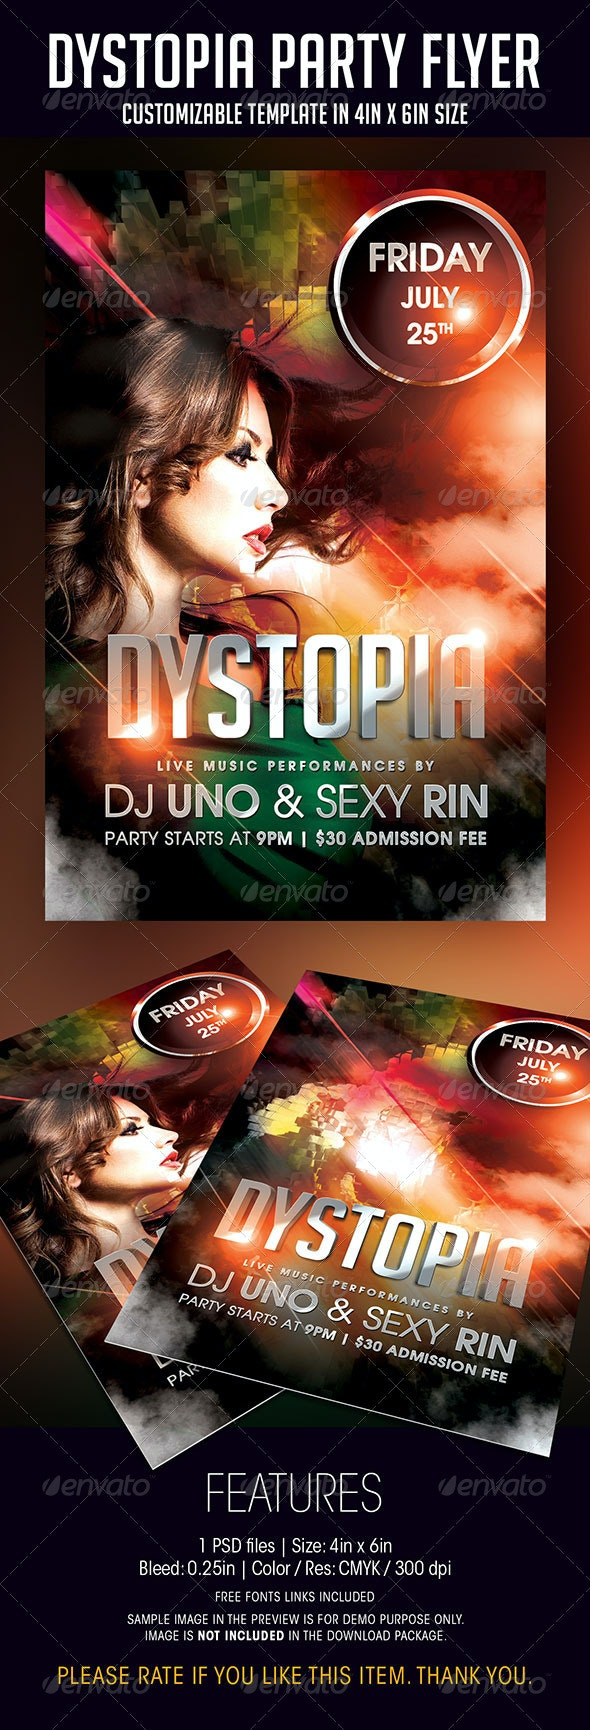 Dystopia Party Flyer - Flyers Print Templates